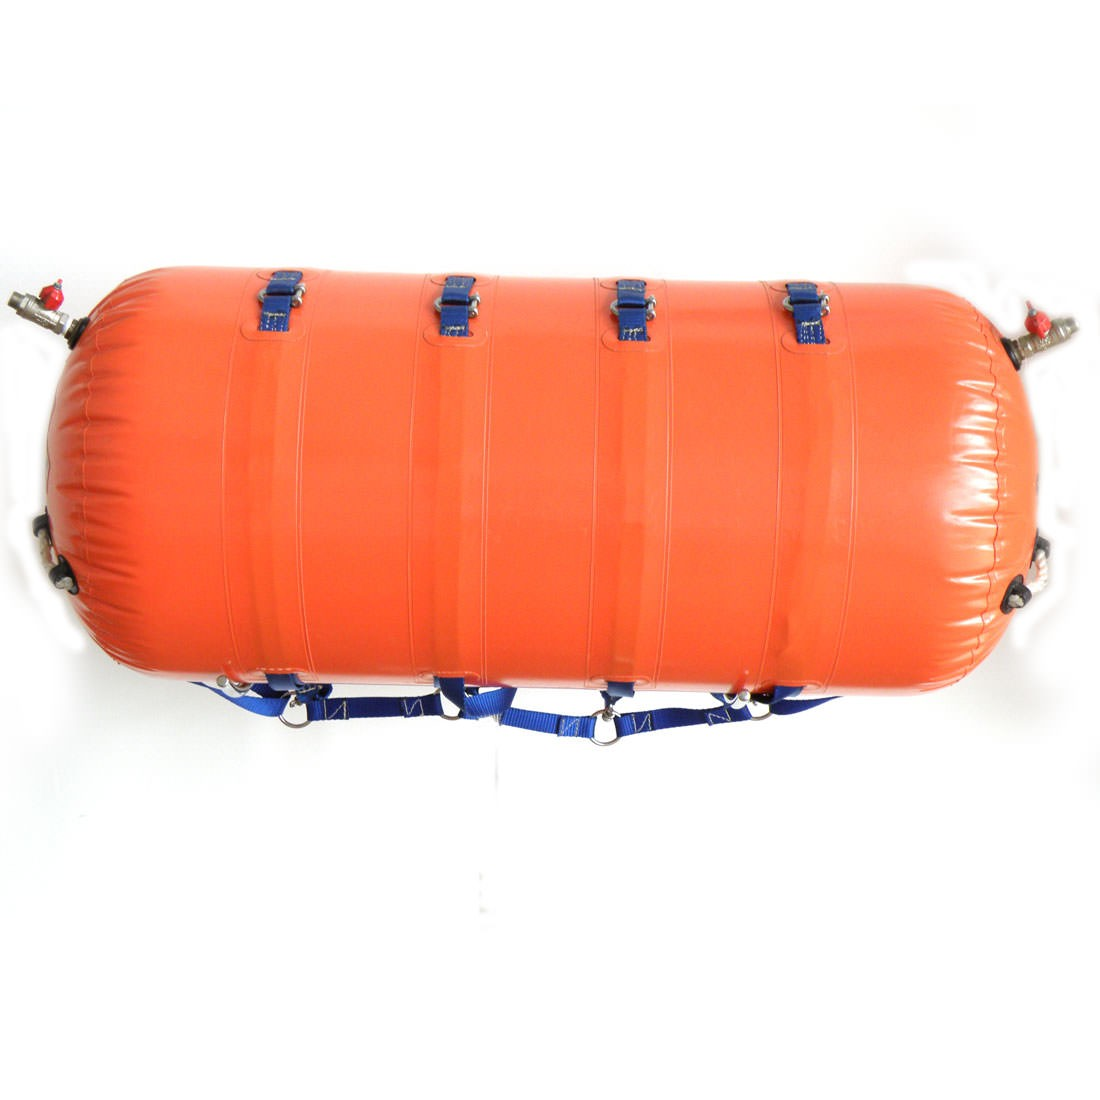 Seaflex 1 Ton Inflatable Buoyancy Unit